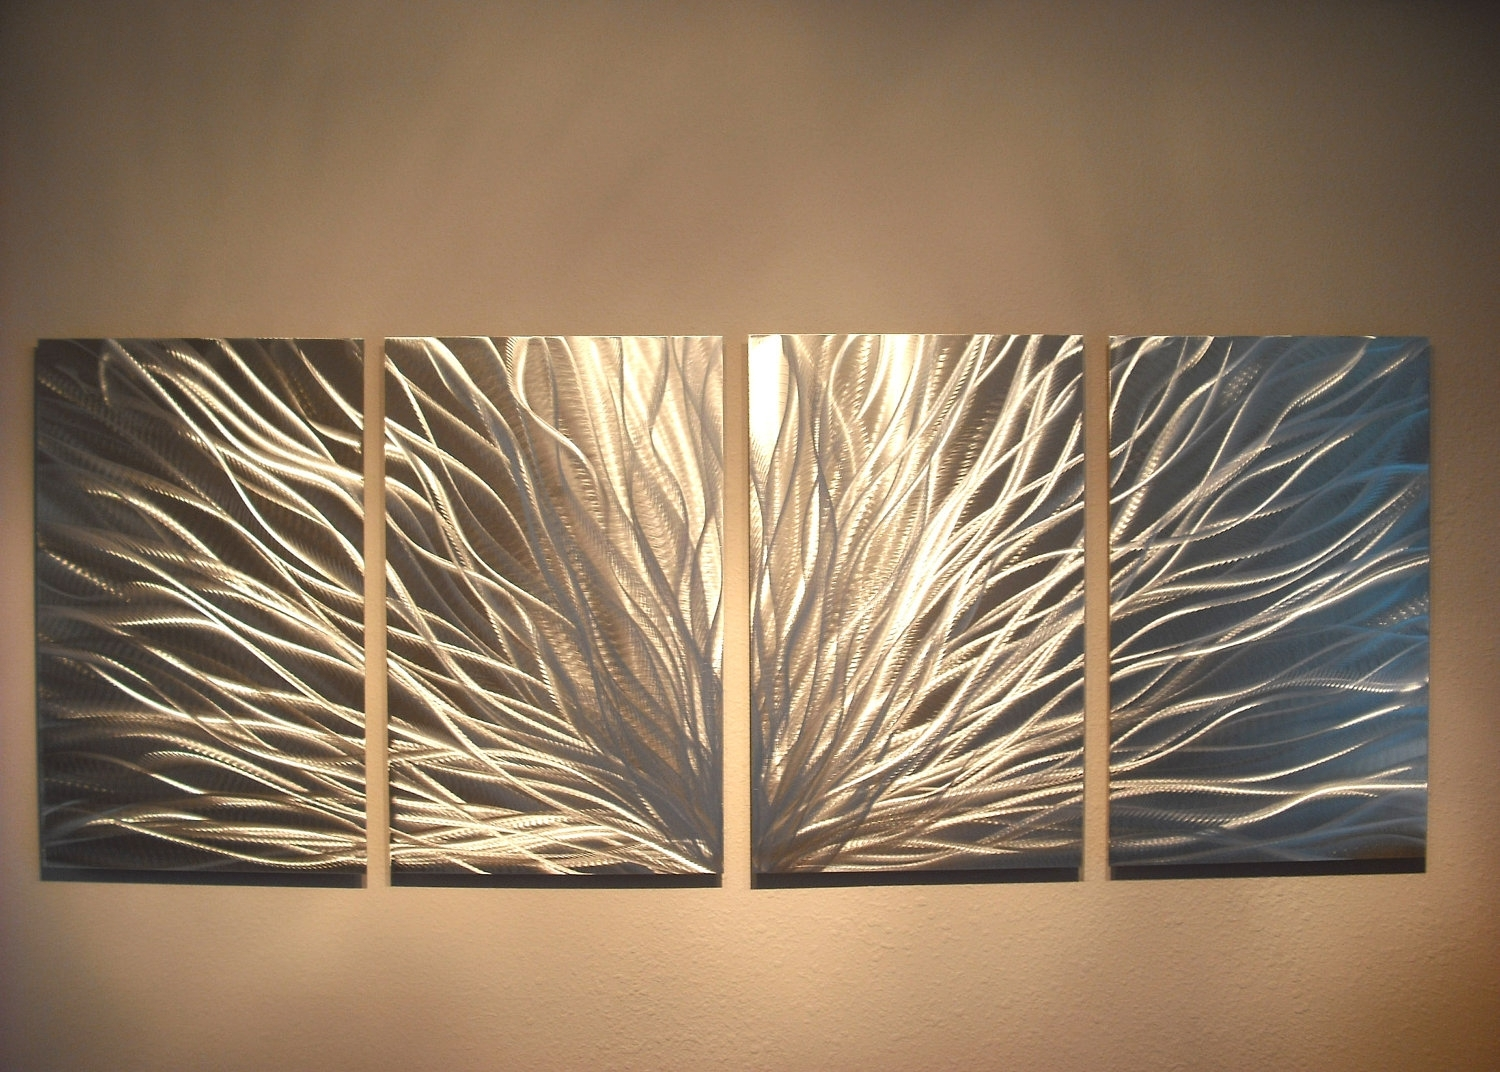 Radiance – Abstract Metal Wall Art Contemporary Modern Decor For Most Up To Date Abstract Metal Wall Art Panels (View 14 of 20)